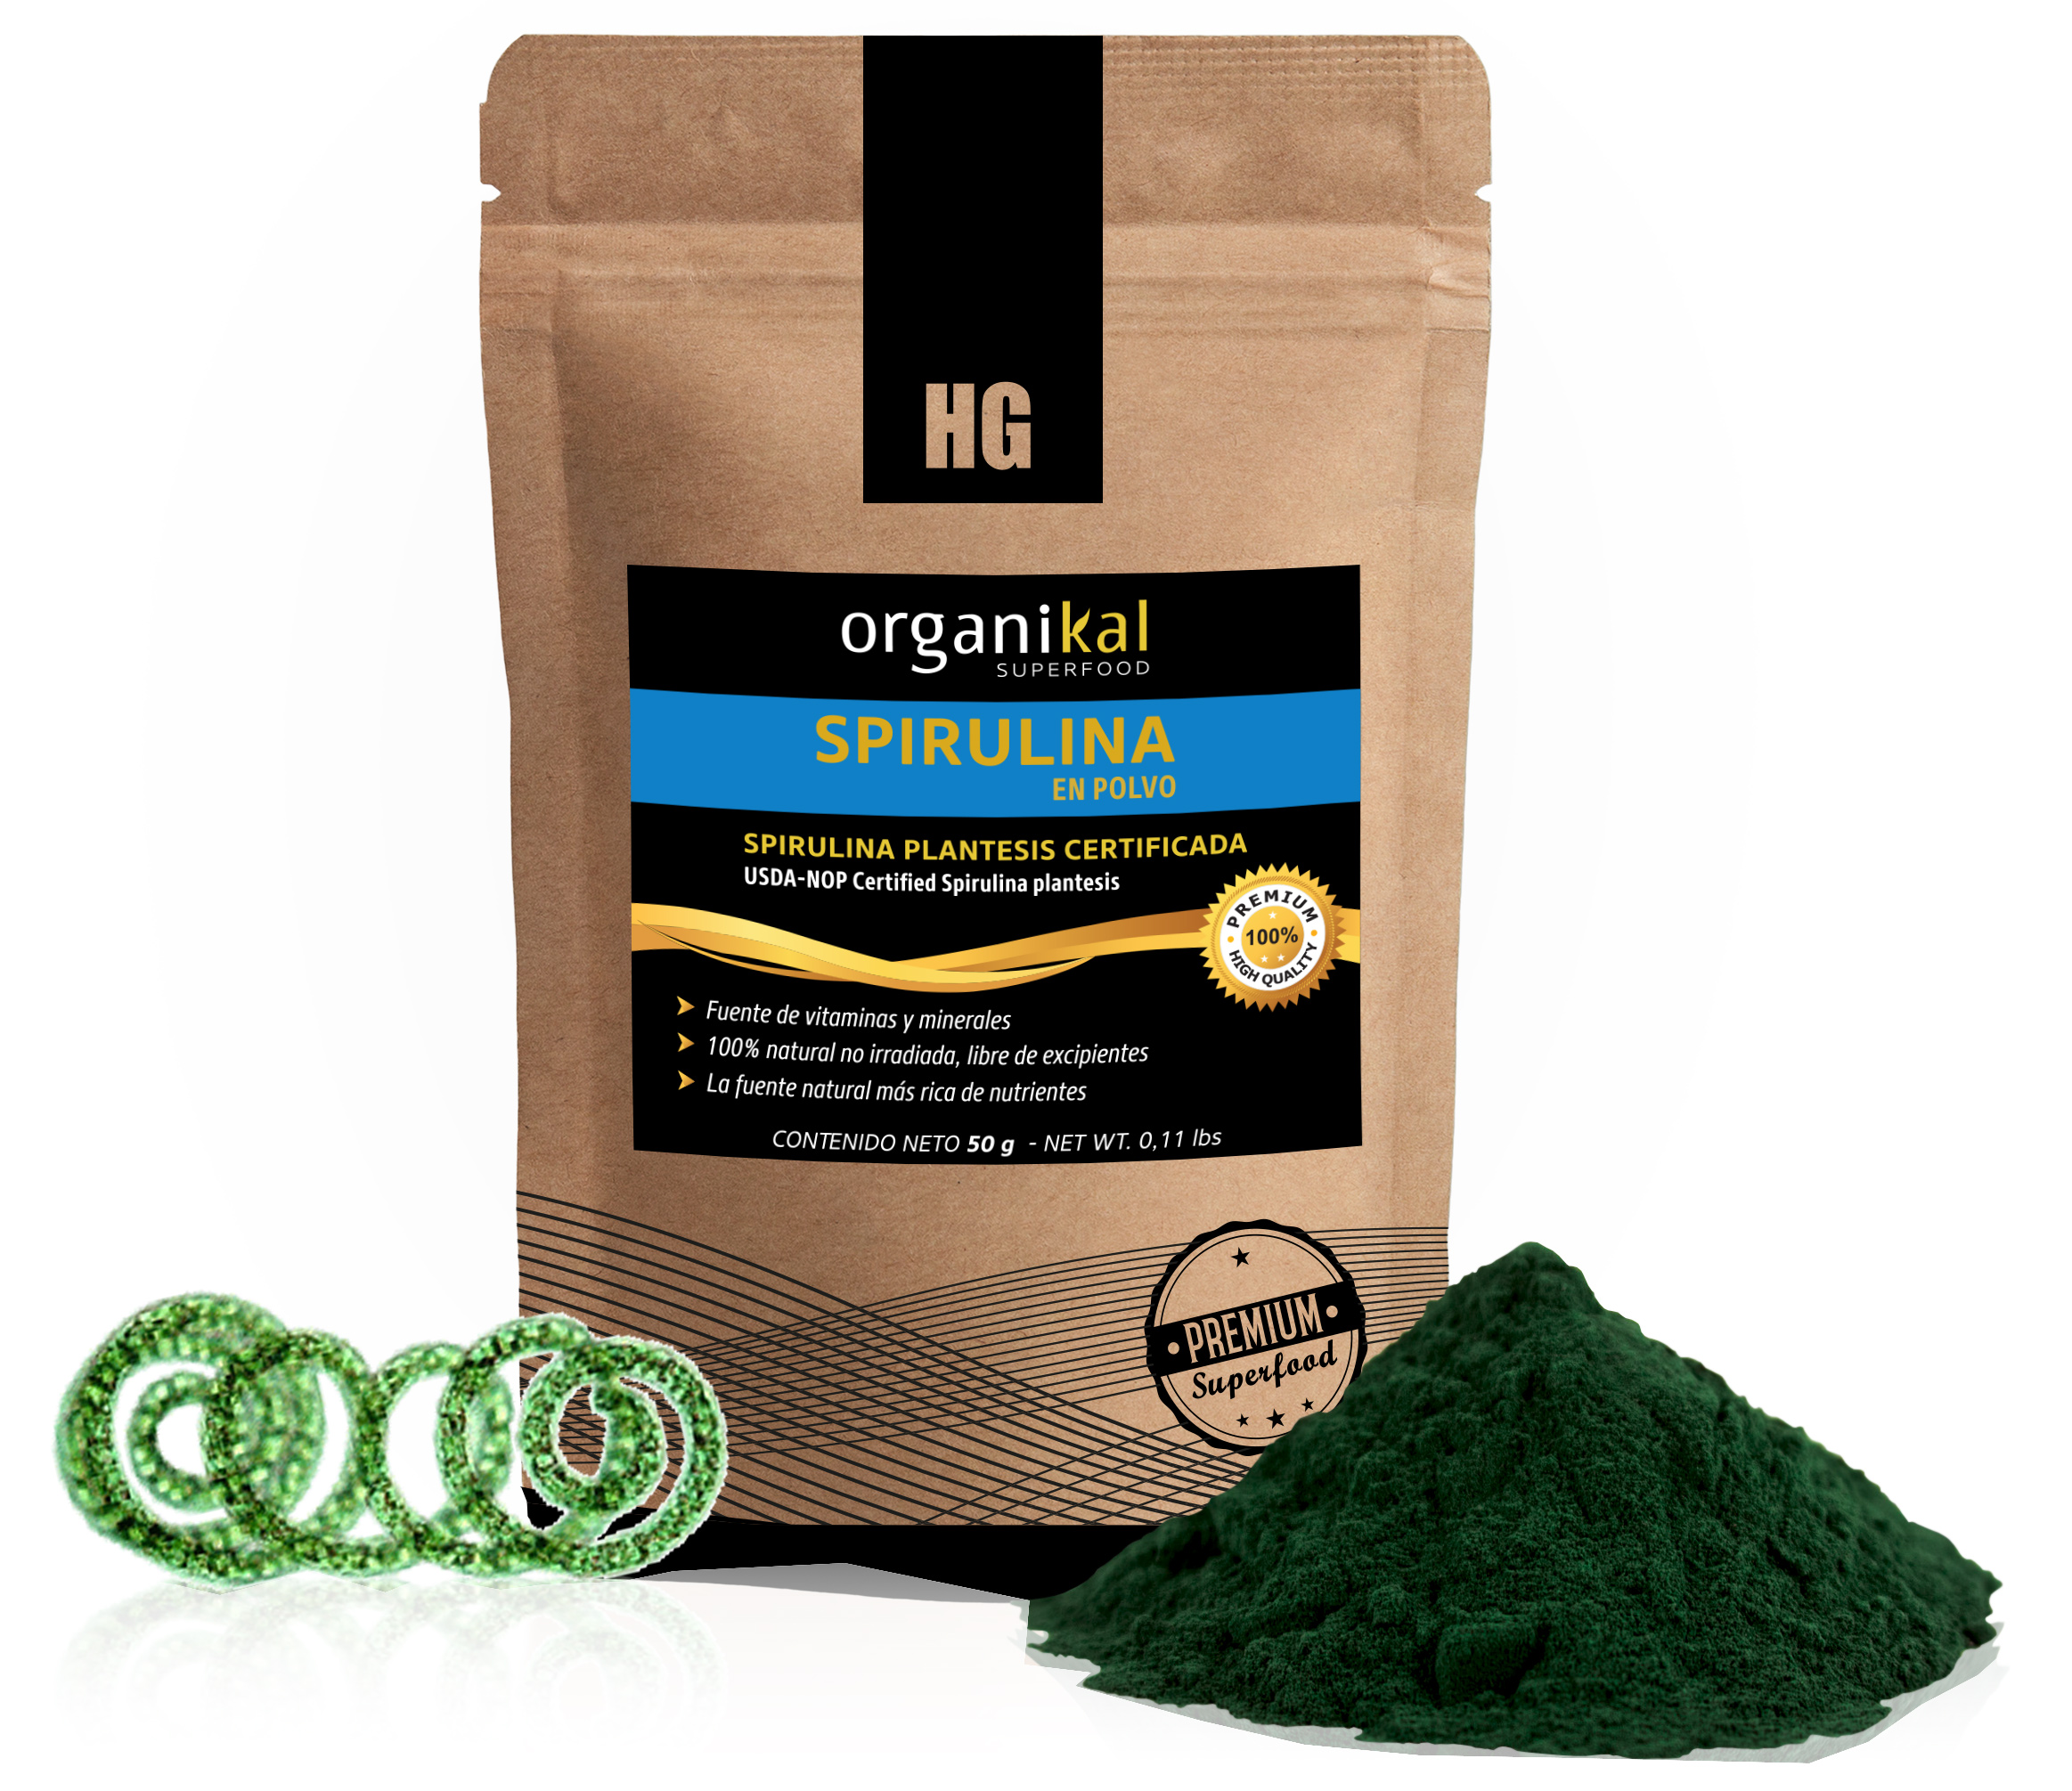 Superfood spirulina en sobre